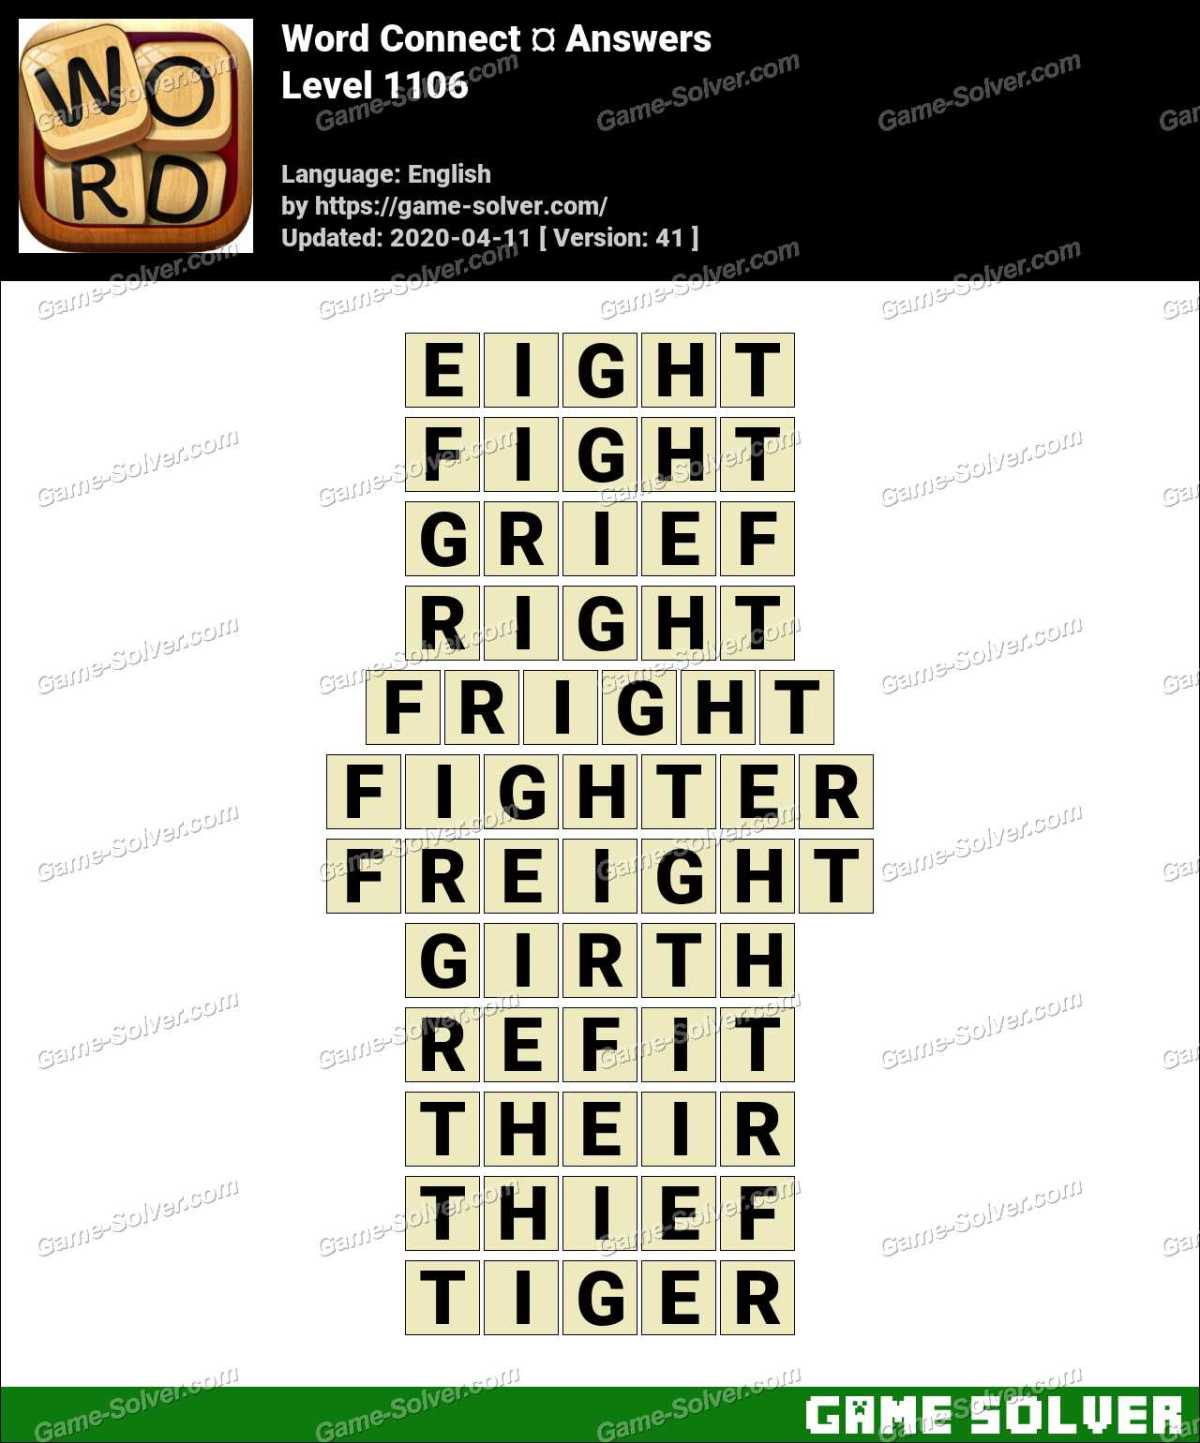 Word Connect Level 1106 Answers